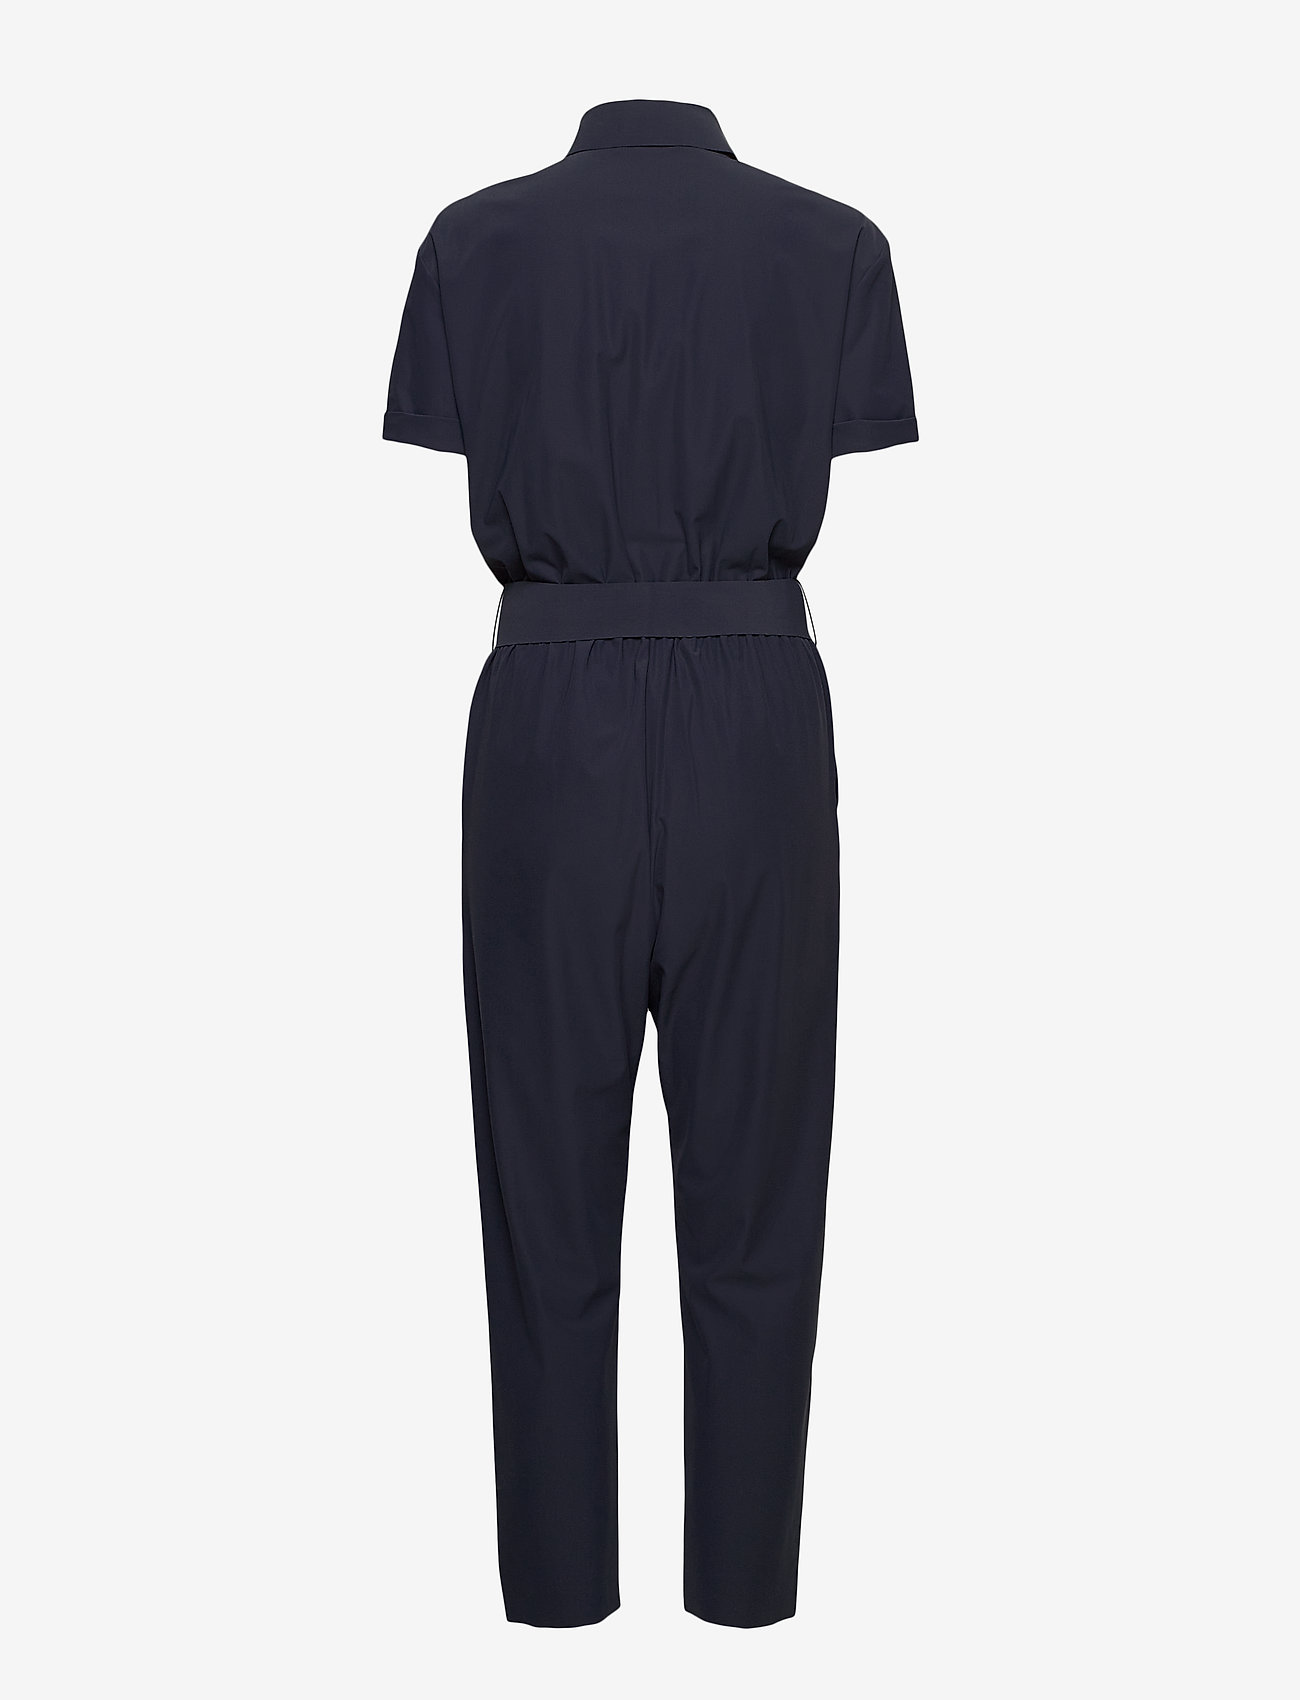 Max&Co. - CUBISMO - jumpsuits - navy blue - 1